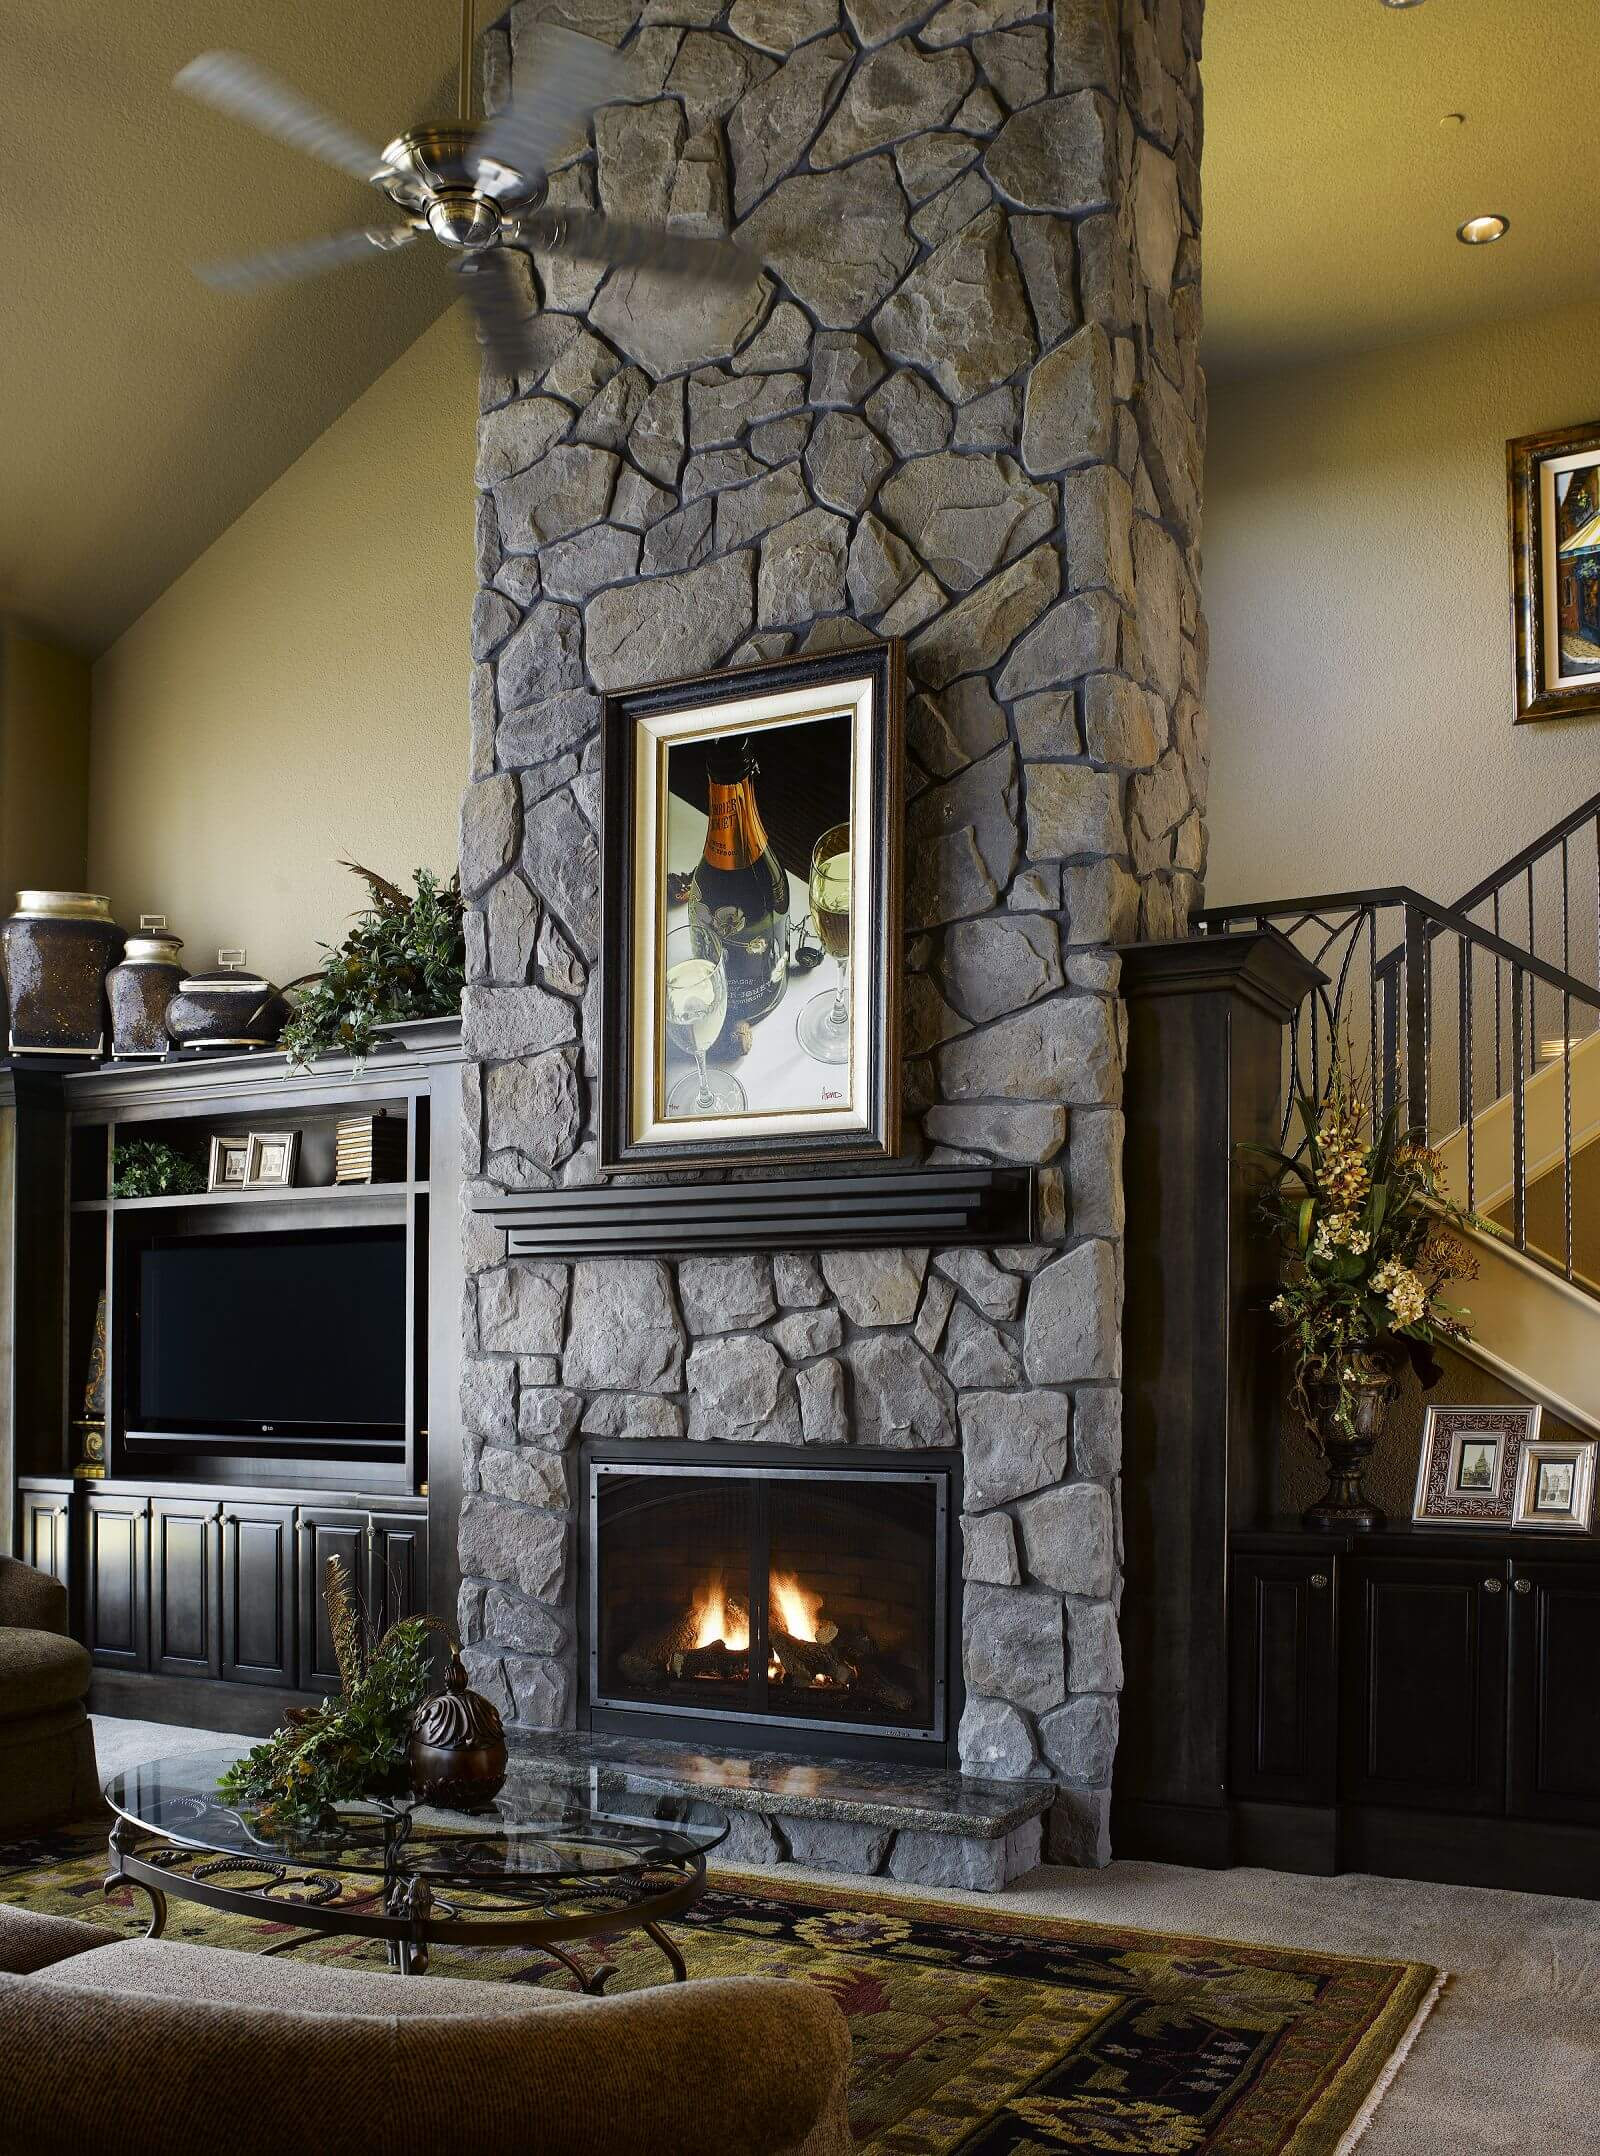 Eldorado Stone Veneer Fireplace Today Show Features Eldorado Stone Meredith Vieira And George